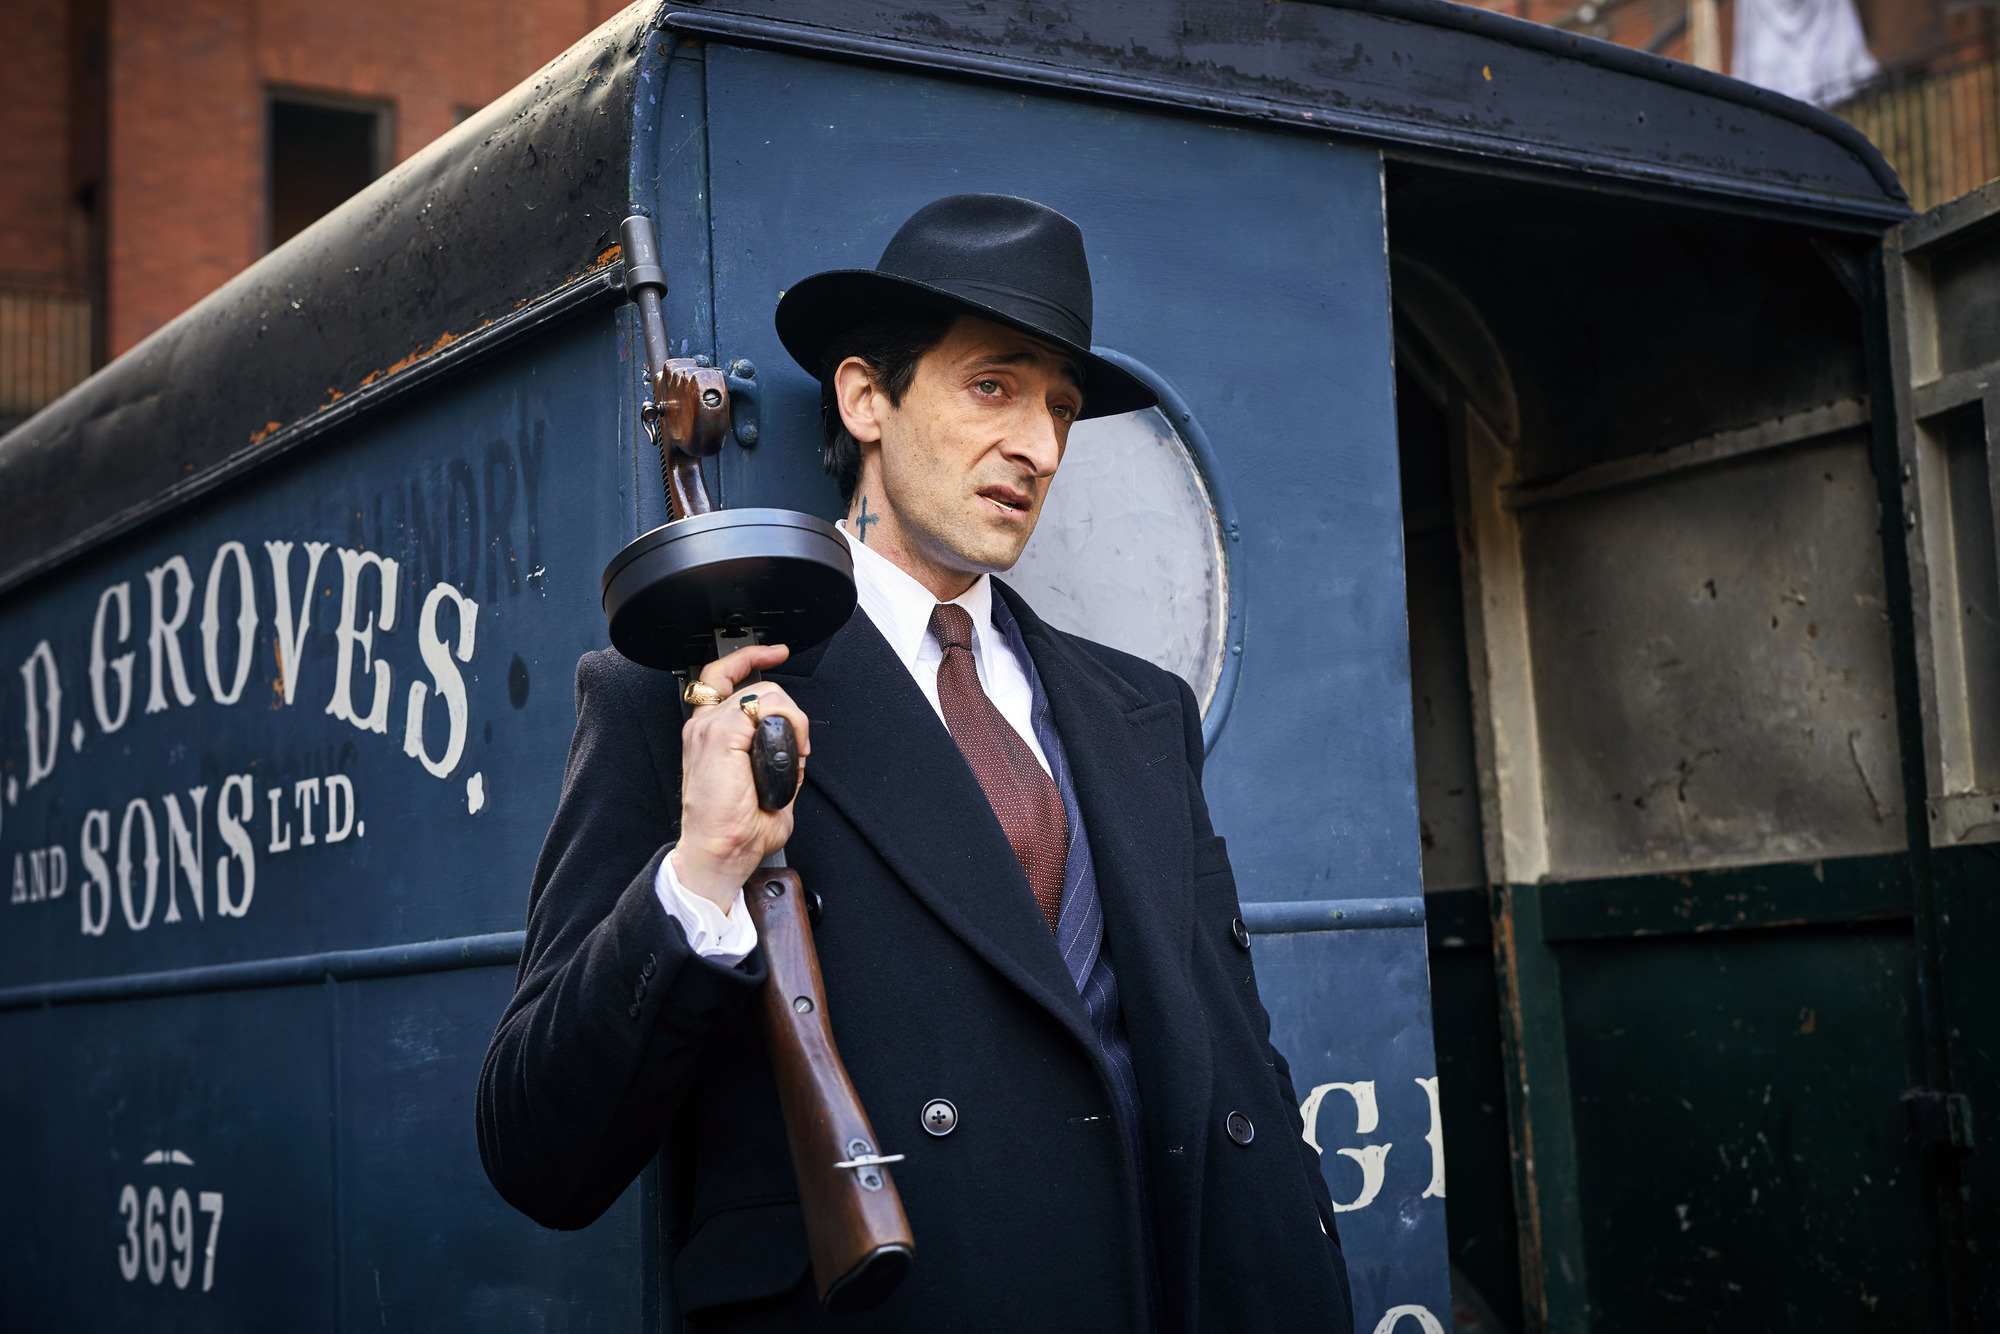 Adrien Brody joins the Peaky Blinders cast as Luca Changretta